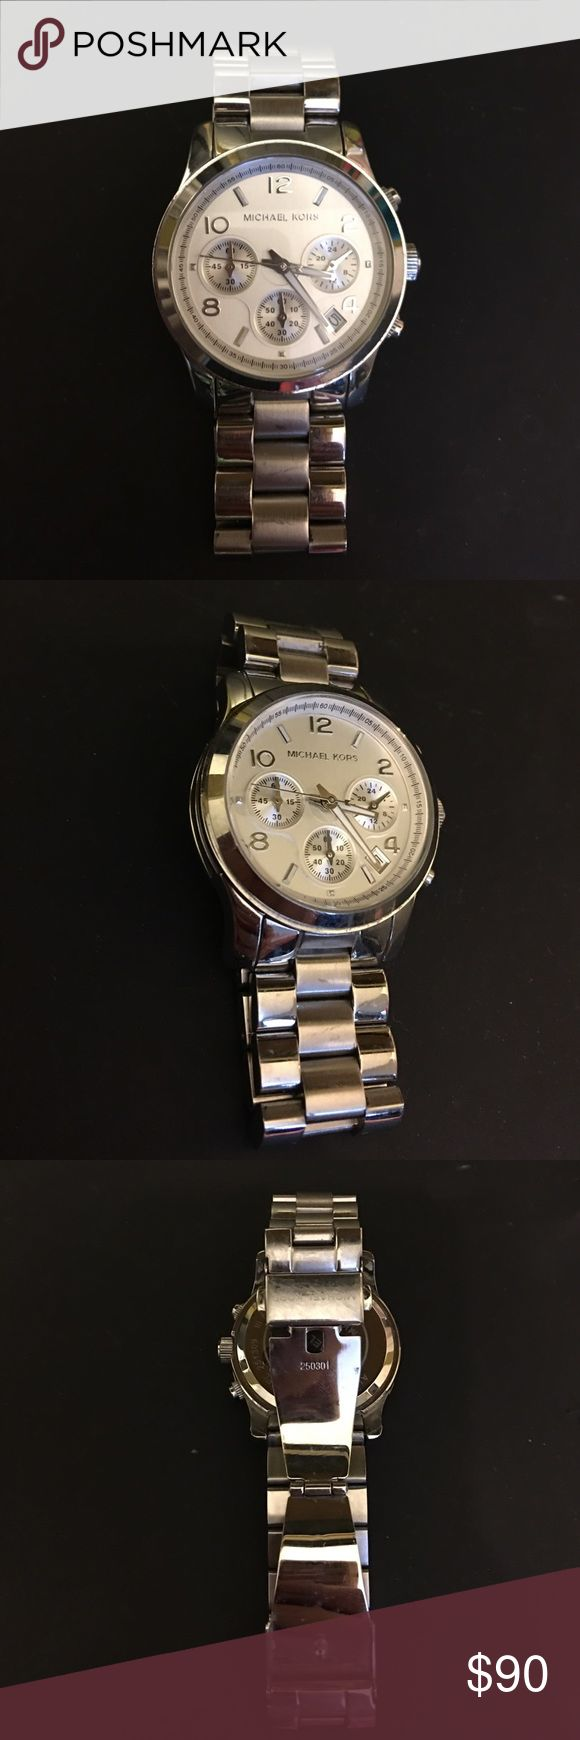 Women's michael kors chronograph watch mk5076 Some wear. No packaging. No extra links. Willing to negotiate. Michael Kors Accessories Watches